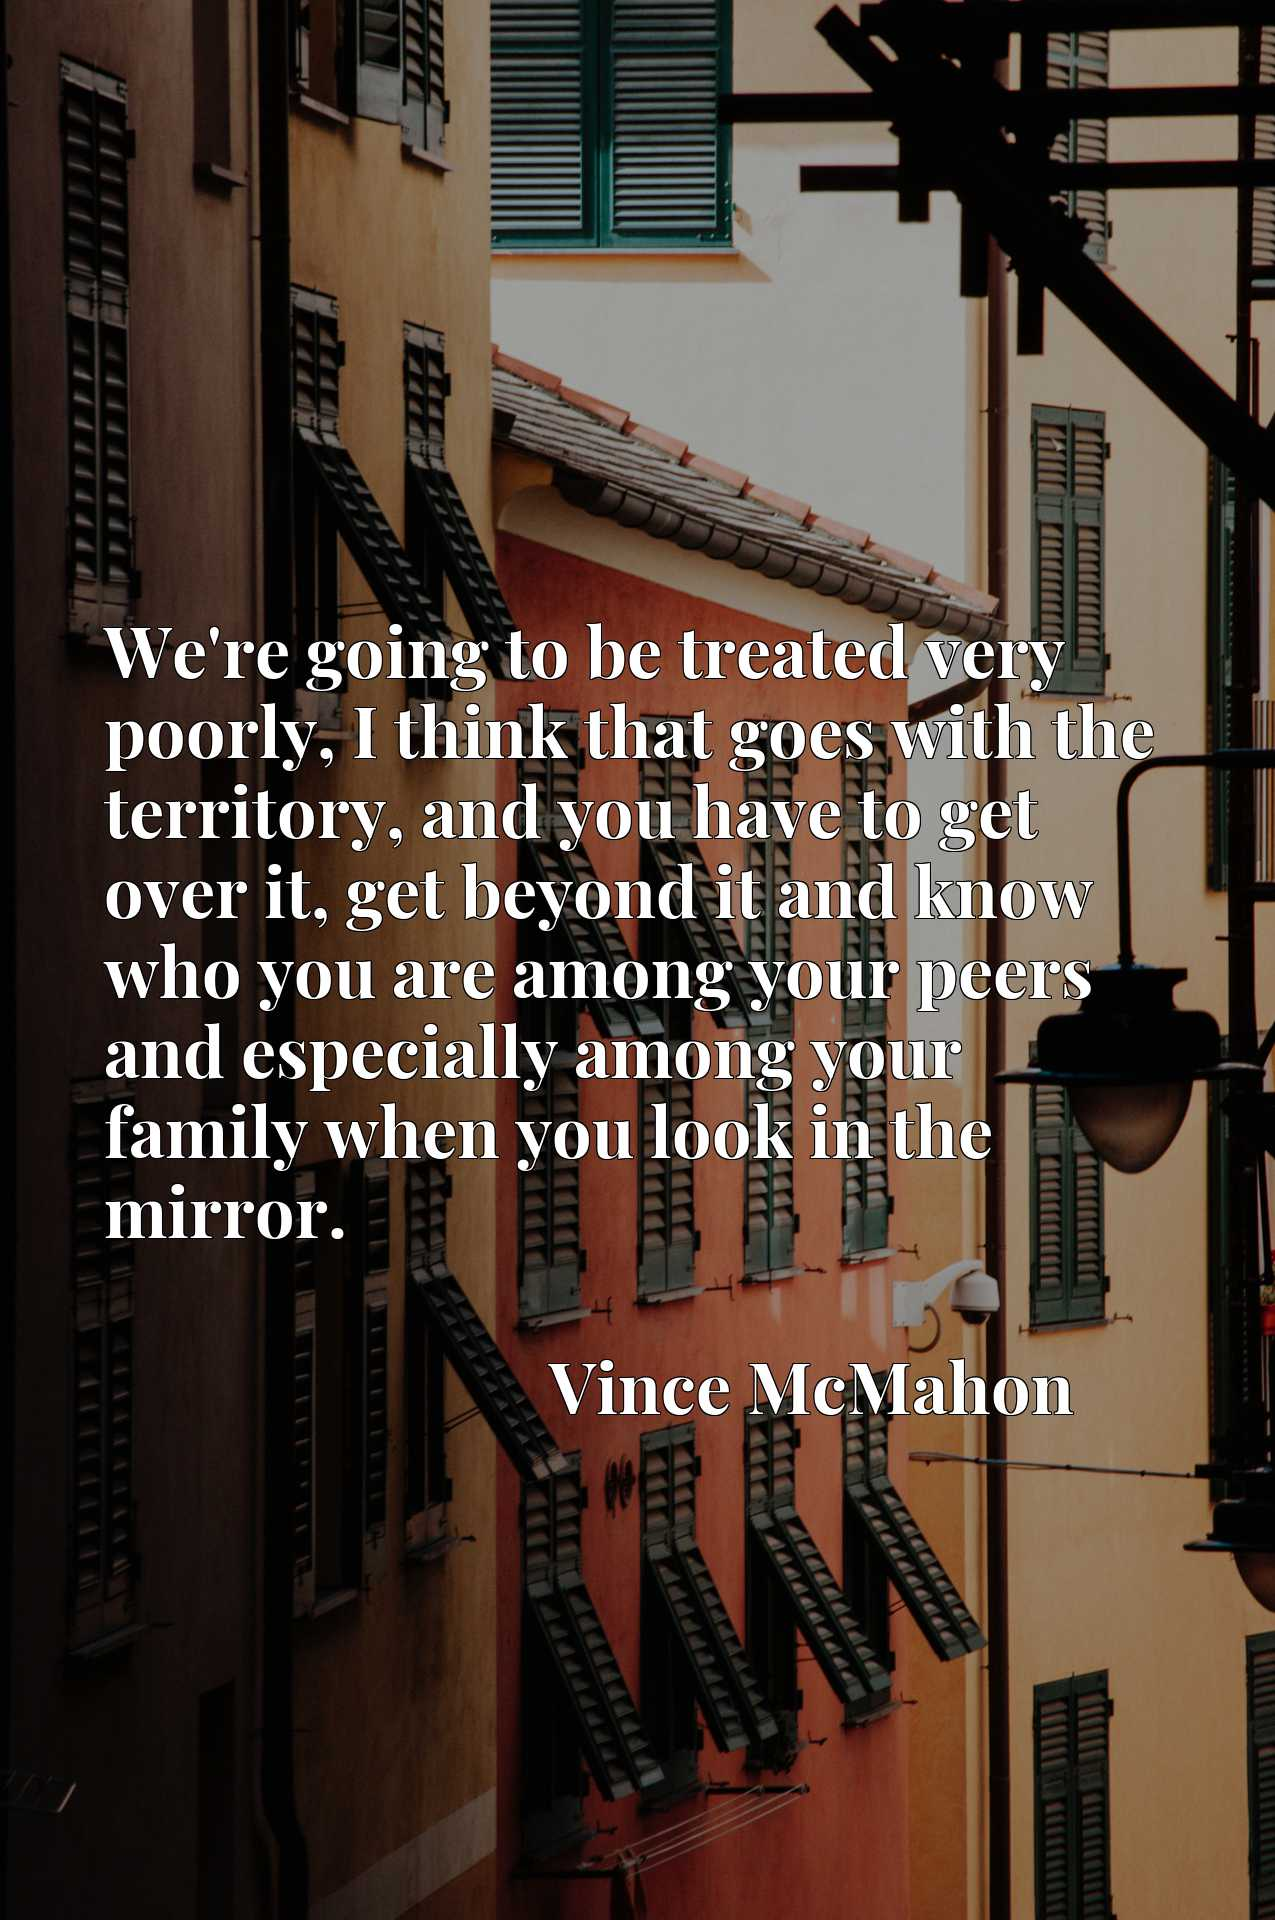 We're going to be treated very poorly, I think that goes with the territory, and you have to get over it, get beyond it and know who you are among your peers and especially among your family when you look in the mirror.